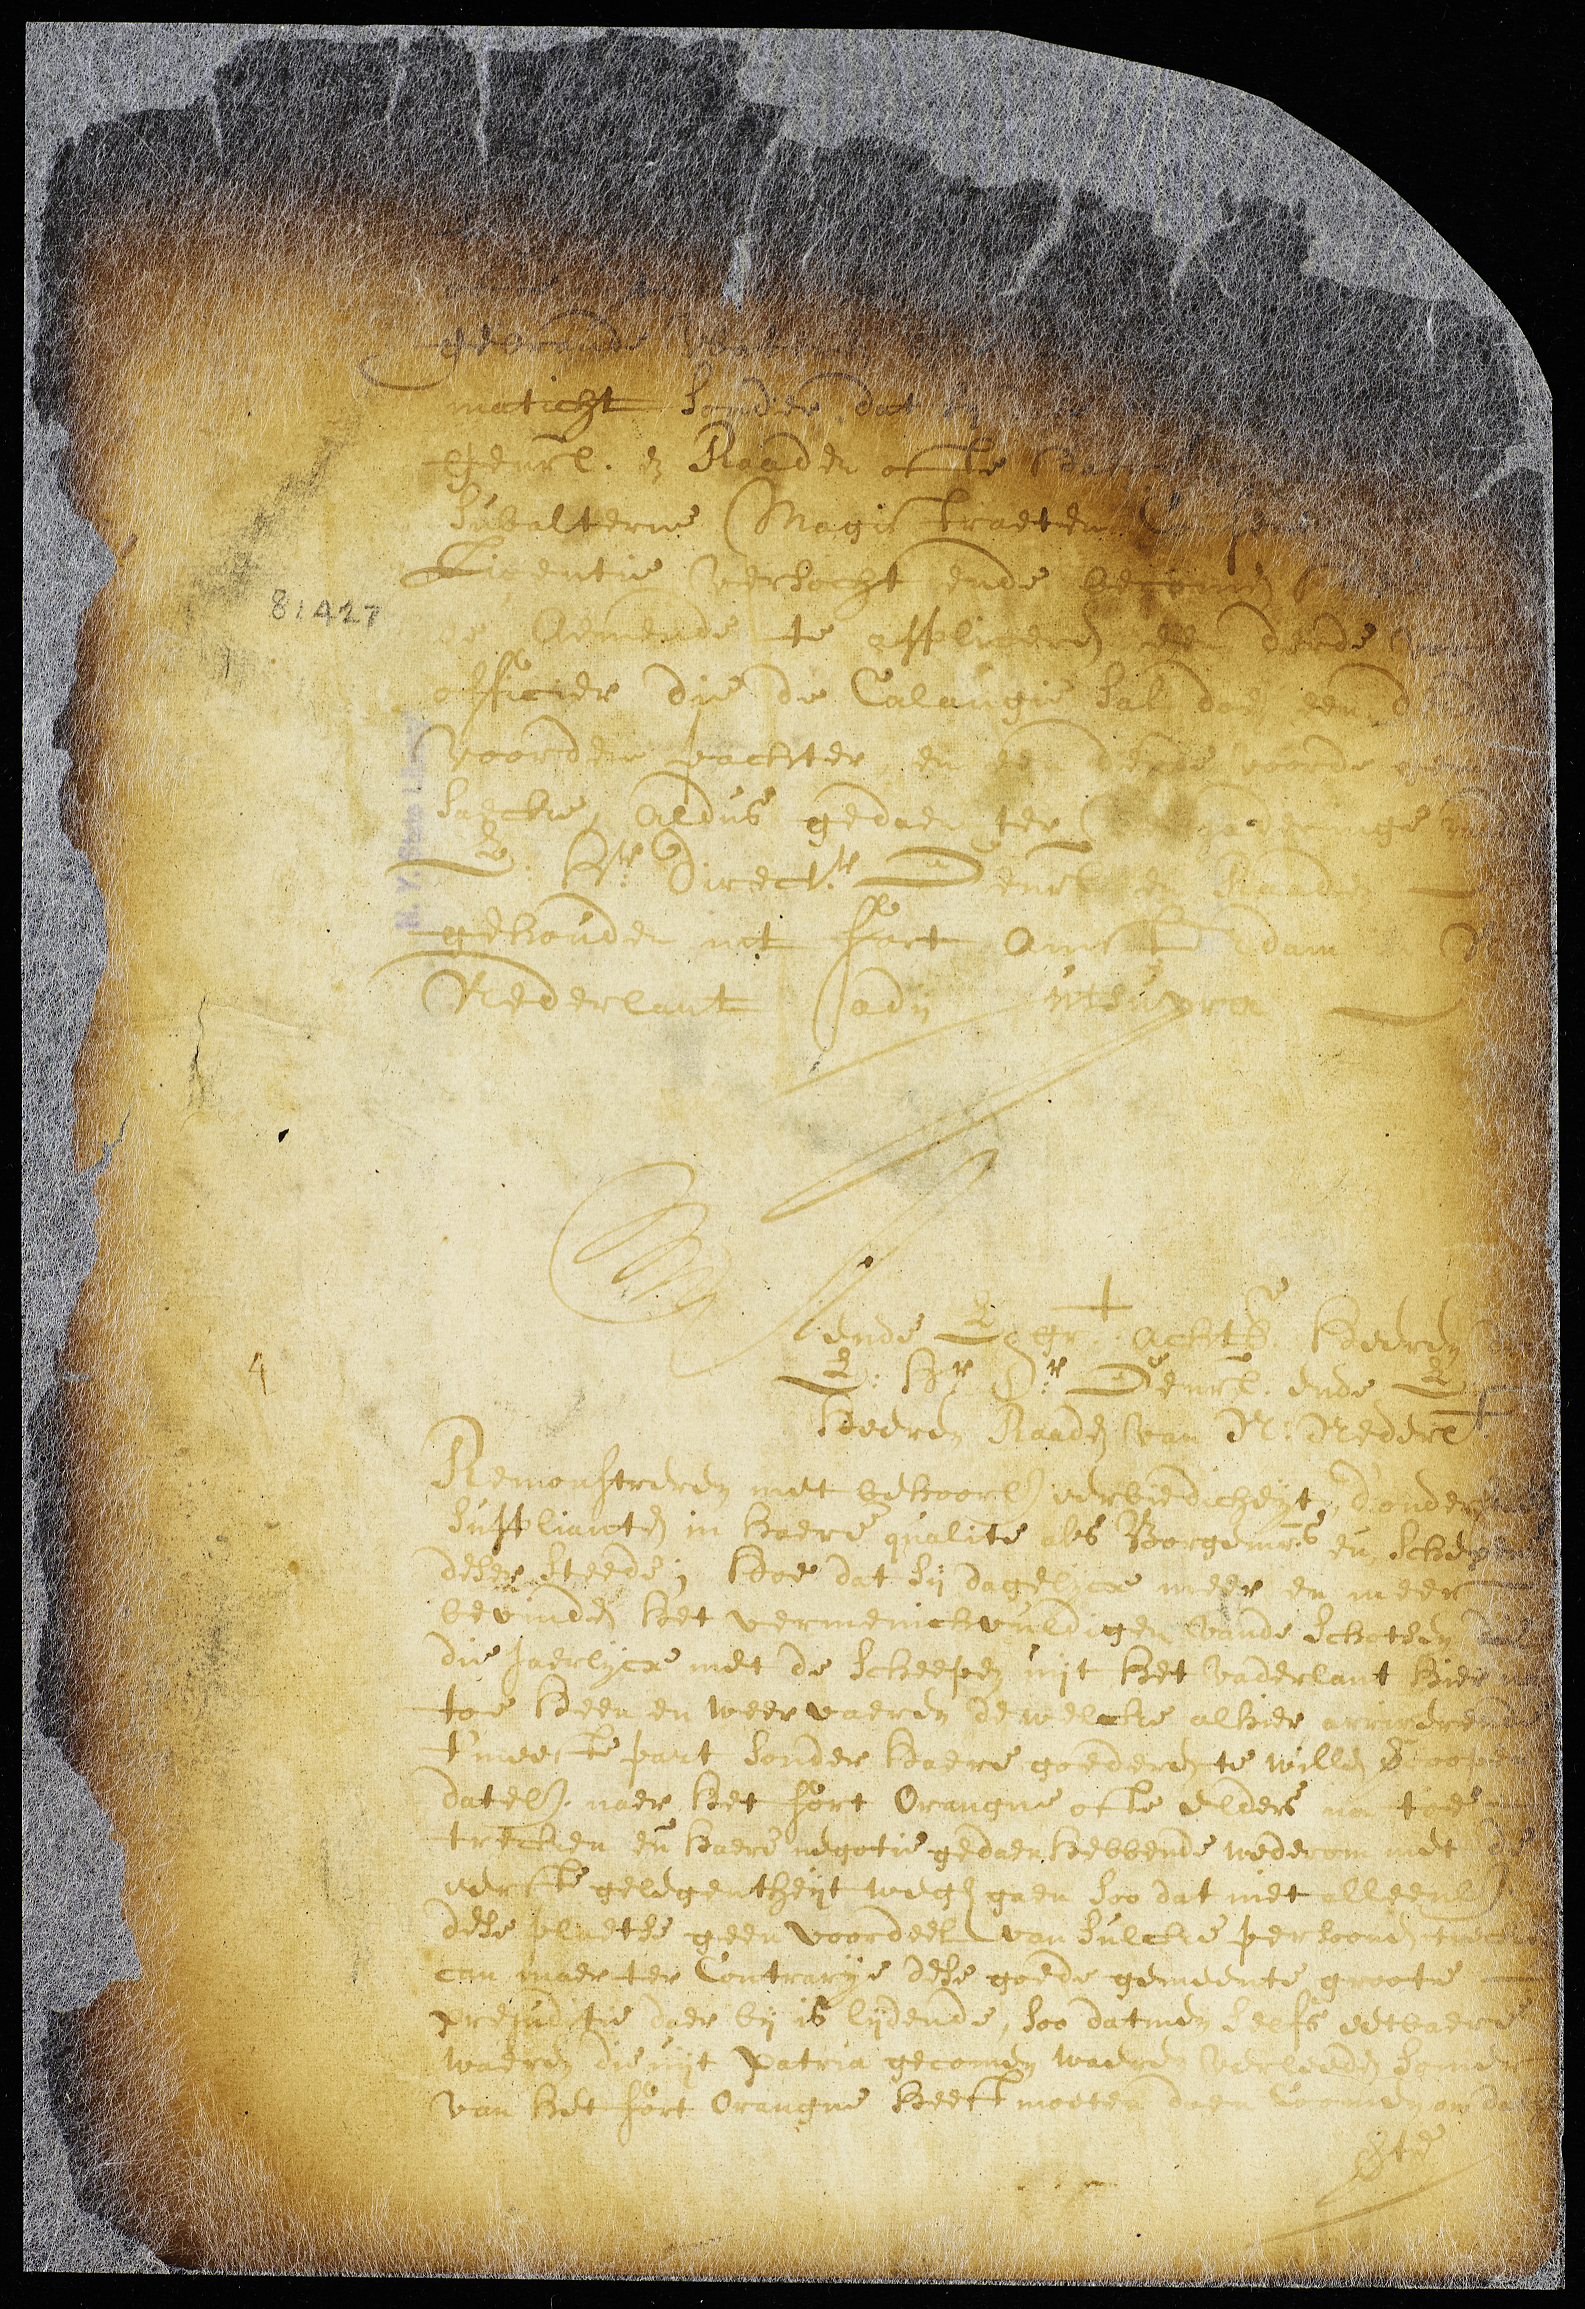 Petition Establishing the Burgher Rite, 1567